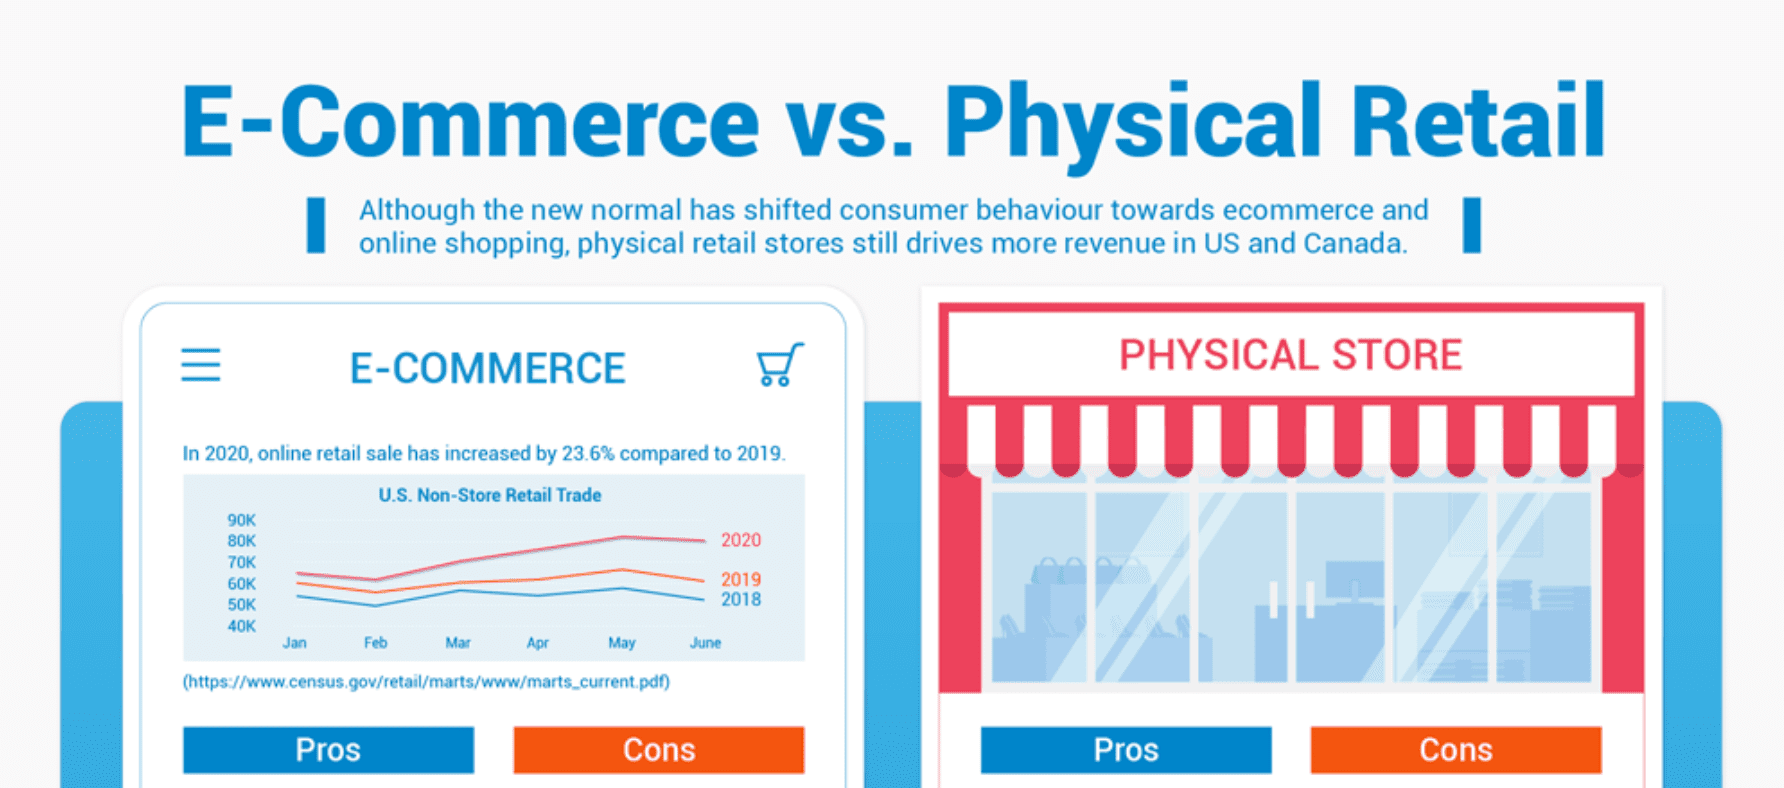 Ecommerce and retail pros and cons